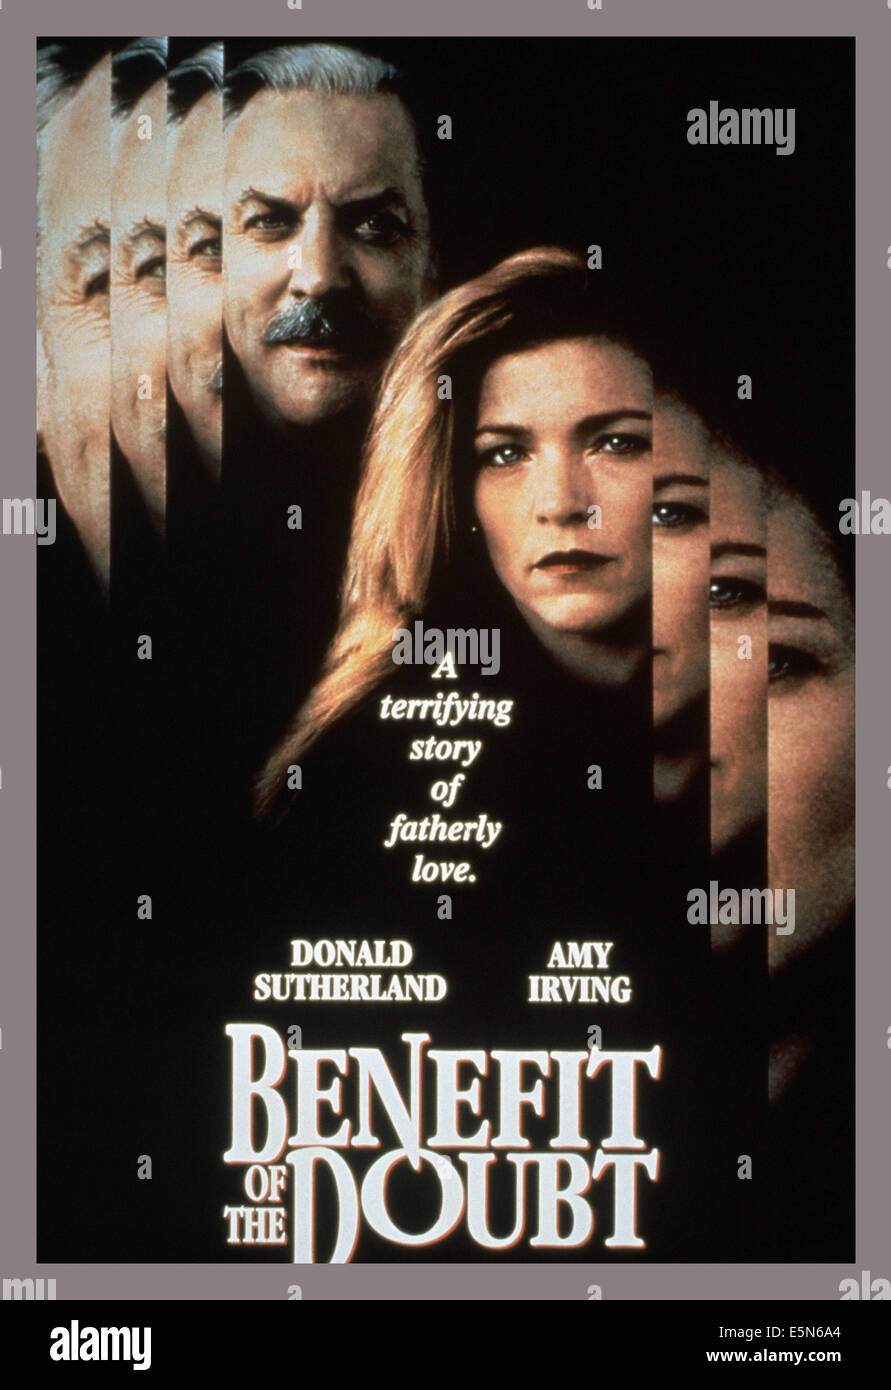 BENEFIT OF THE DOUBT, from left: Donald Sutherland, Amy Irving, 1993, © Miramax/courtesy Everett Collection - Stock Image